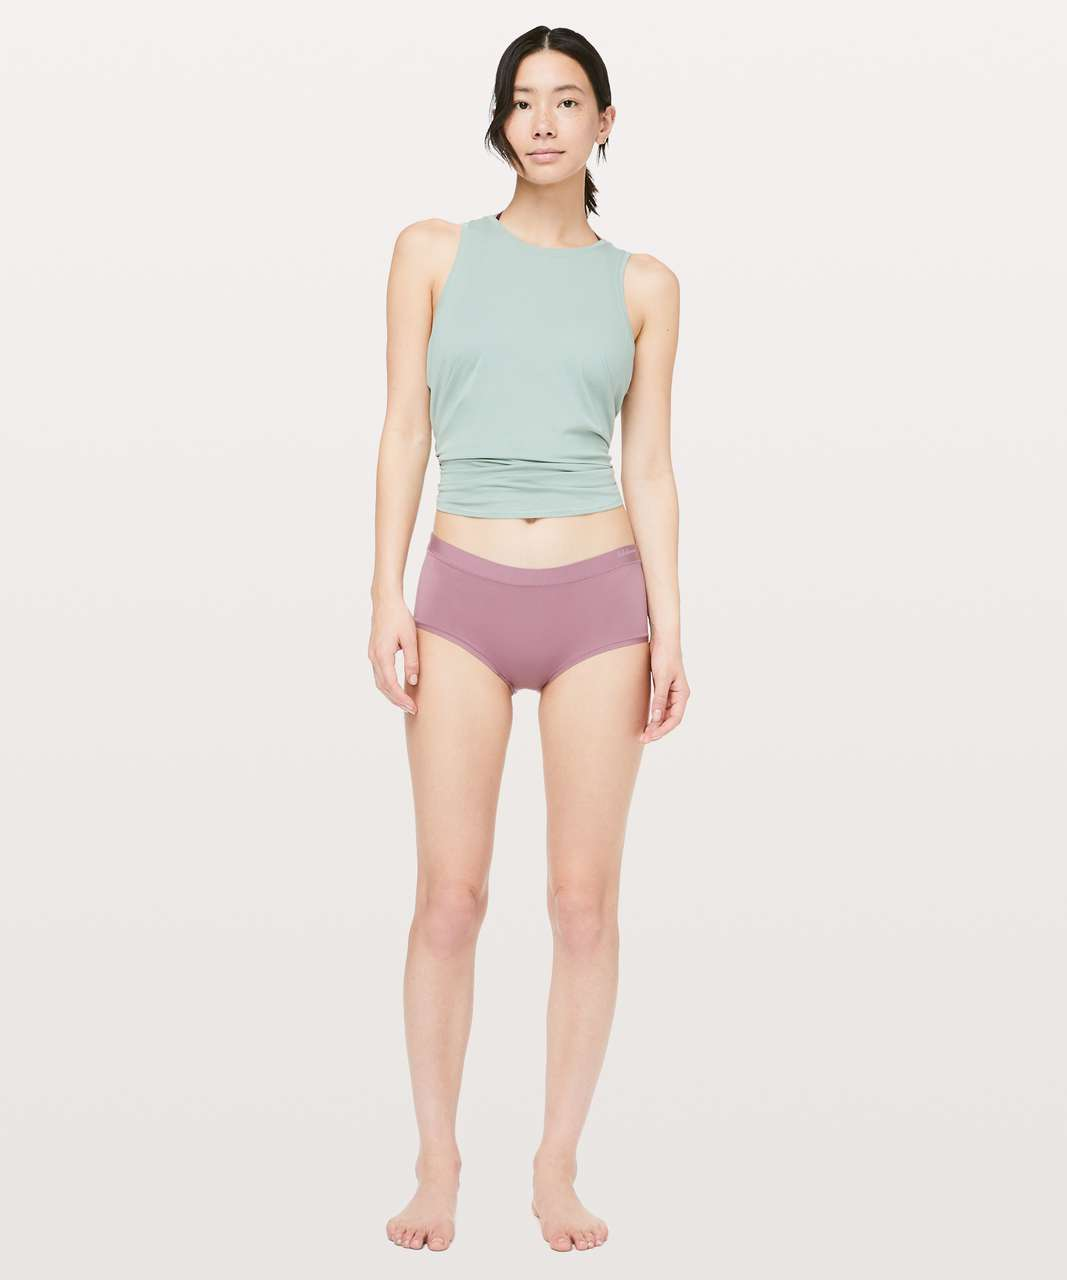 Lululemon Simply There Boyshort - Figue